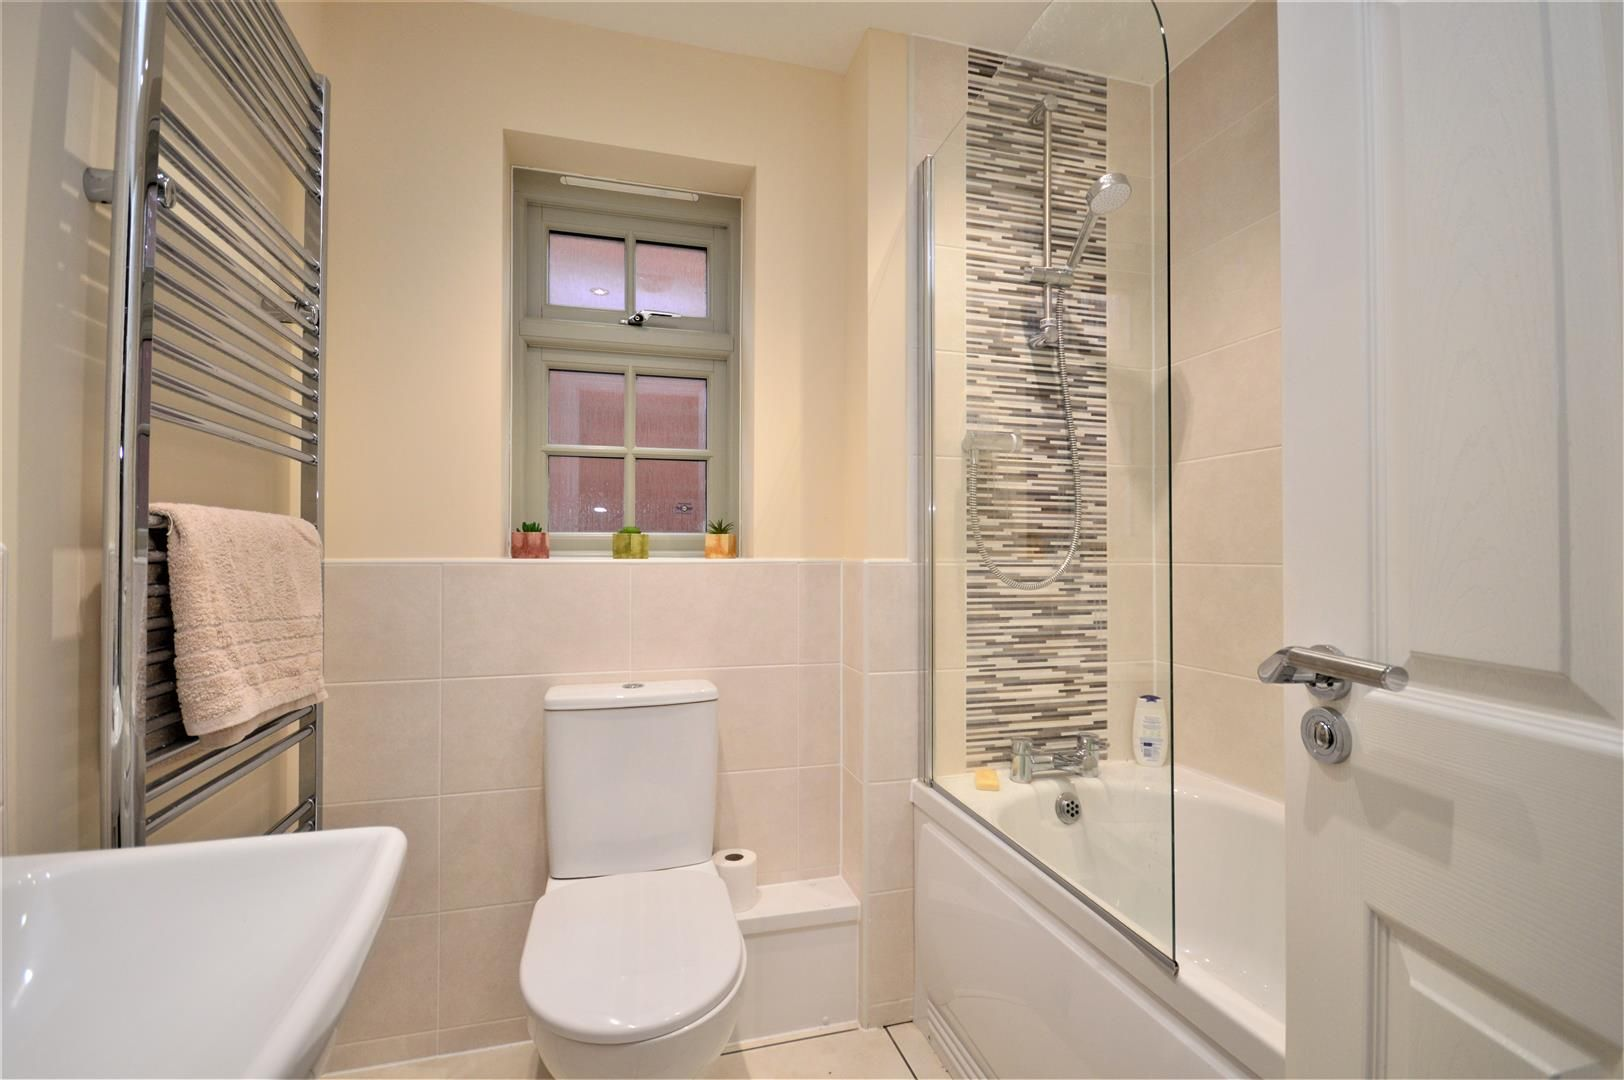 3 bed semi-detached for sale in Bodenham  - Property Image 10